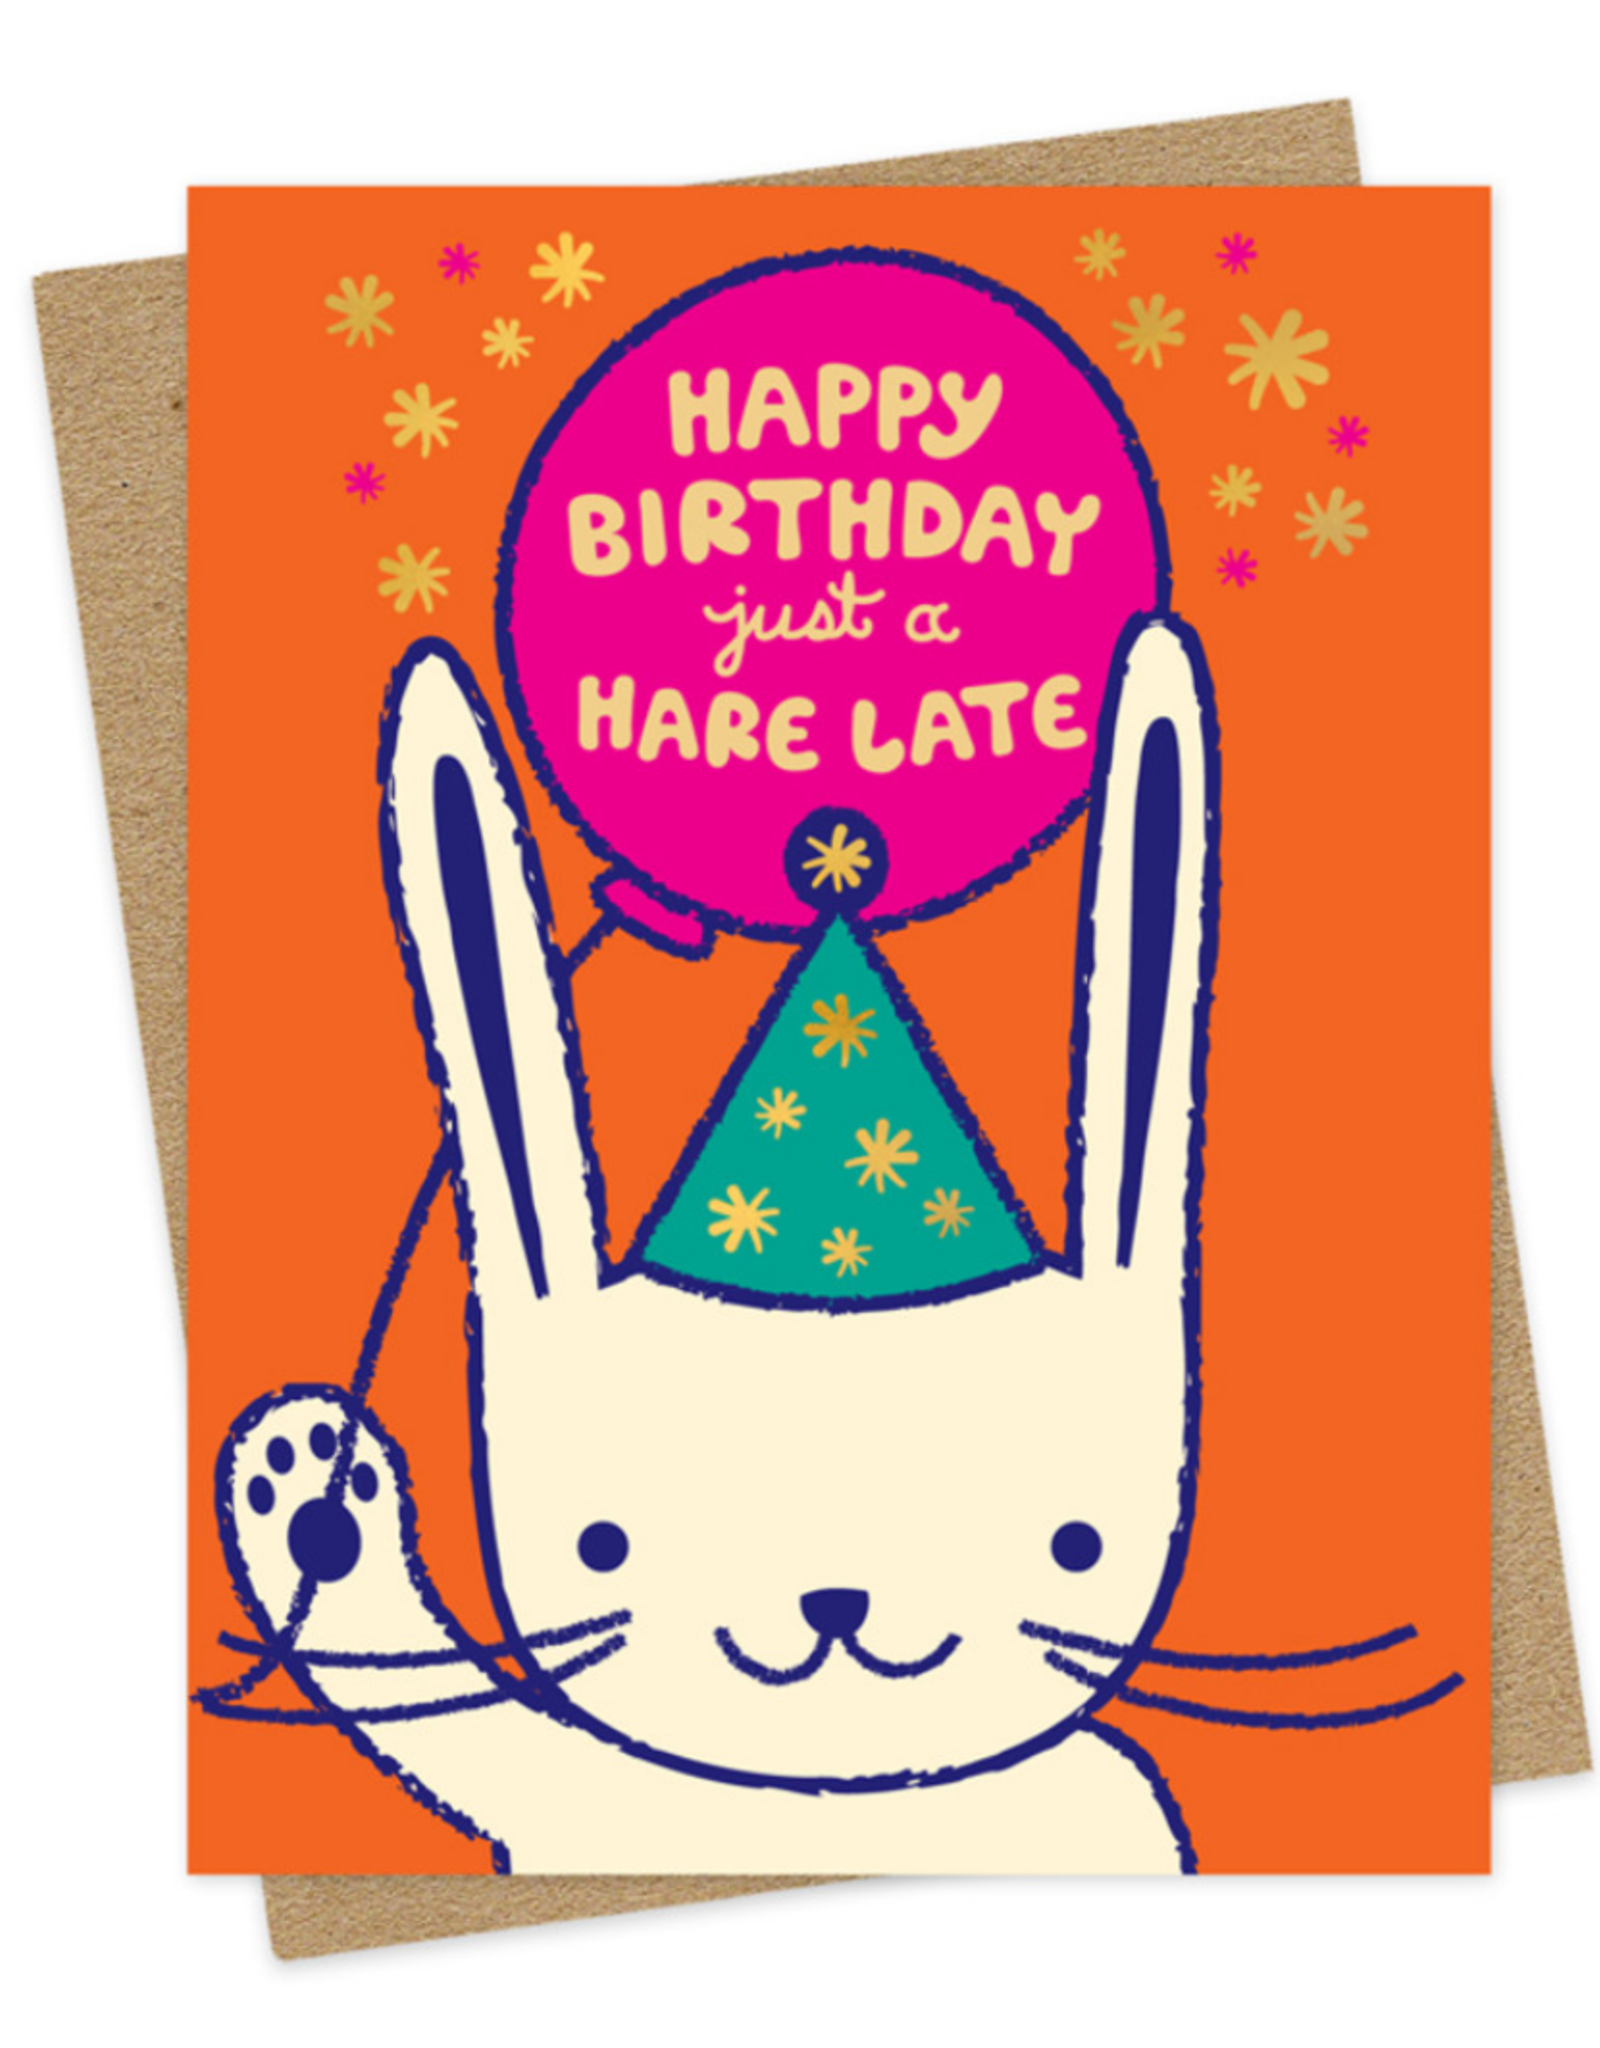 Happy Birthday just a Hare Late Greeting Card